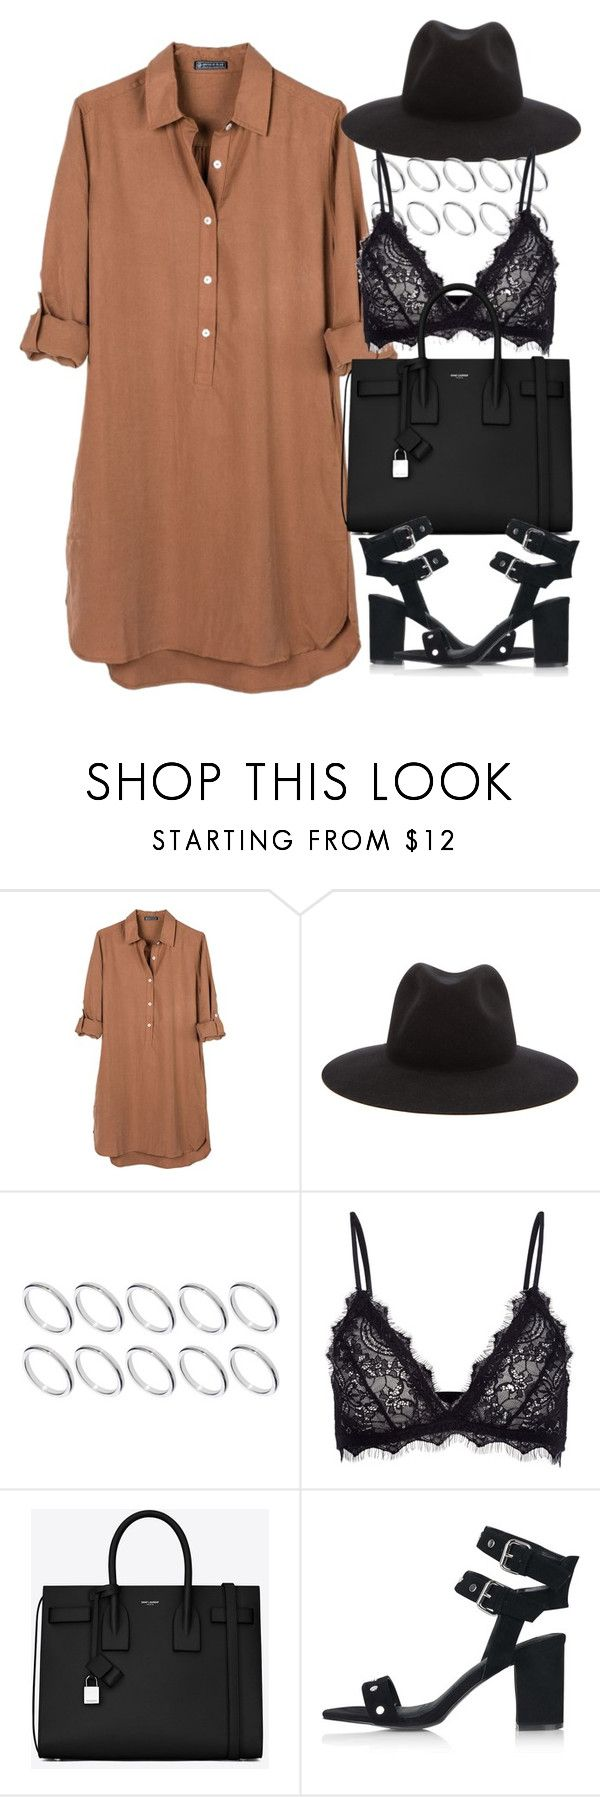 """""""Untitled #4203"""" by maddie1128 ❤ liked on Polyvore featuring United by Blue, rag & bone, ASOS, Anine Bing, Yves Saint Laurent and Topshop"""